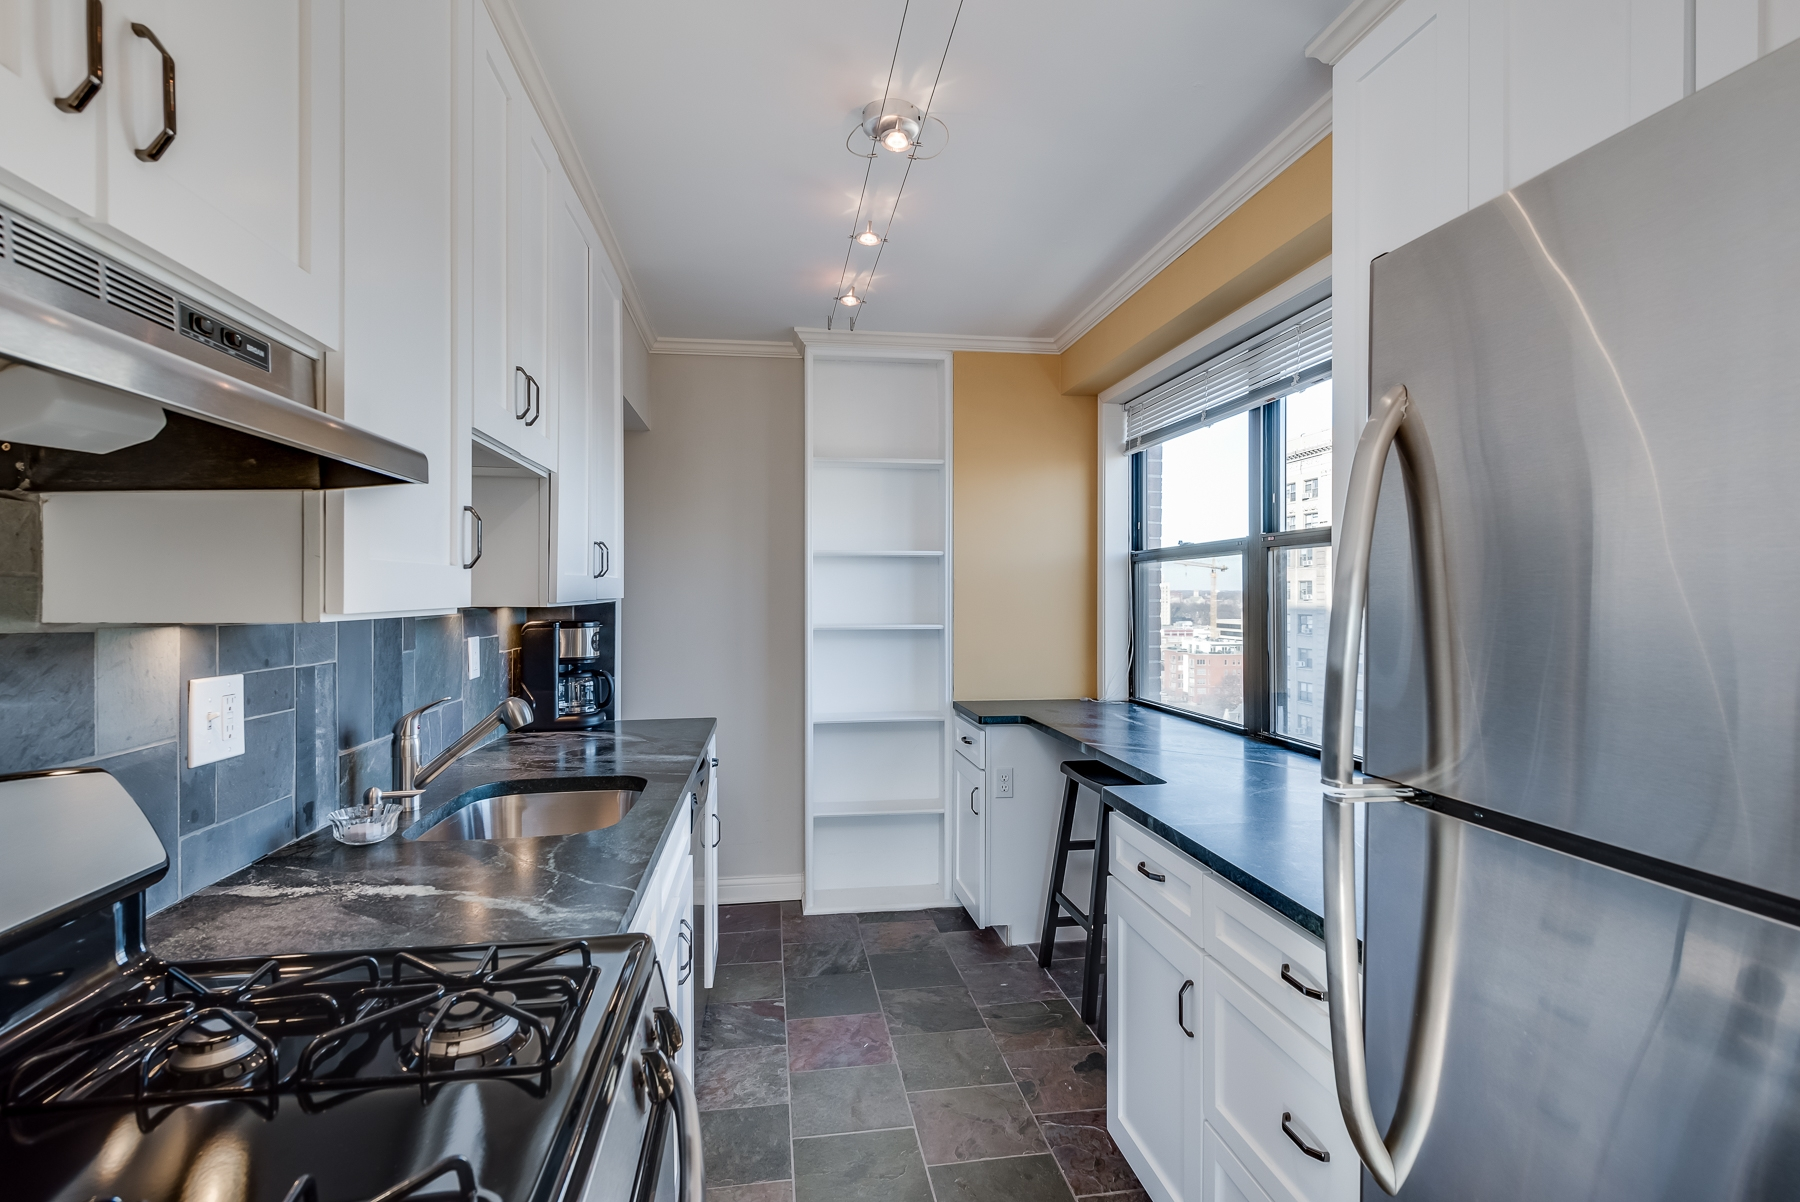 Photographs of a condo on West Pine Boulevard in the Central West End of St. Louis, Missouri for Dielmann Sotheby's International Realty Agent Ted Wight